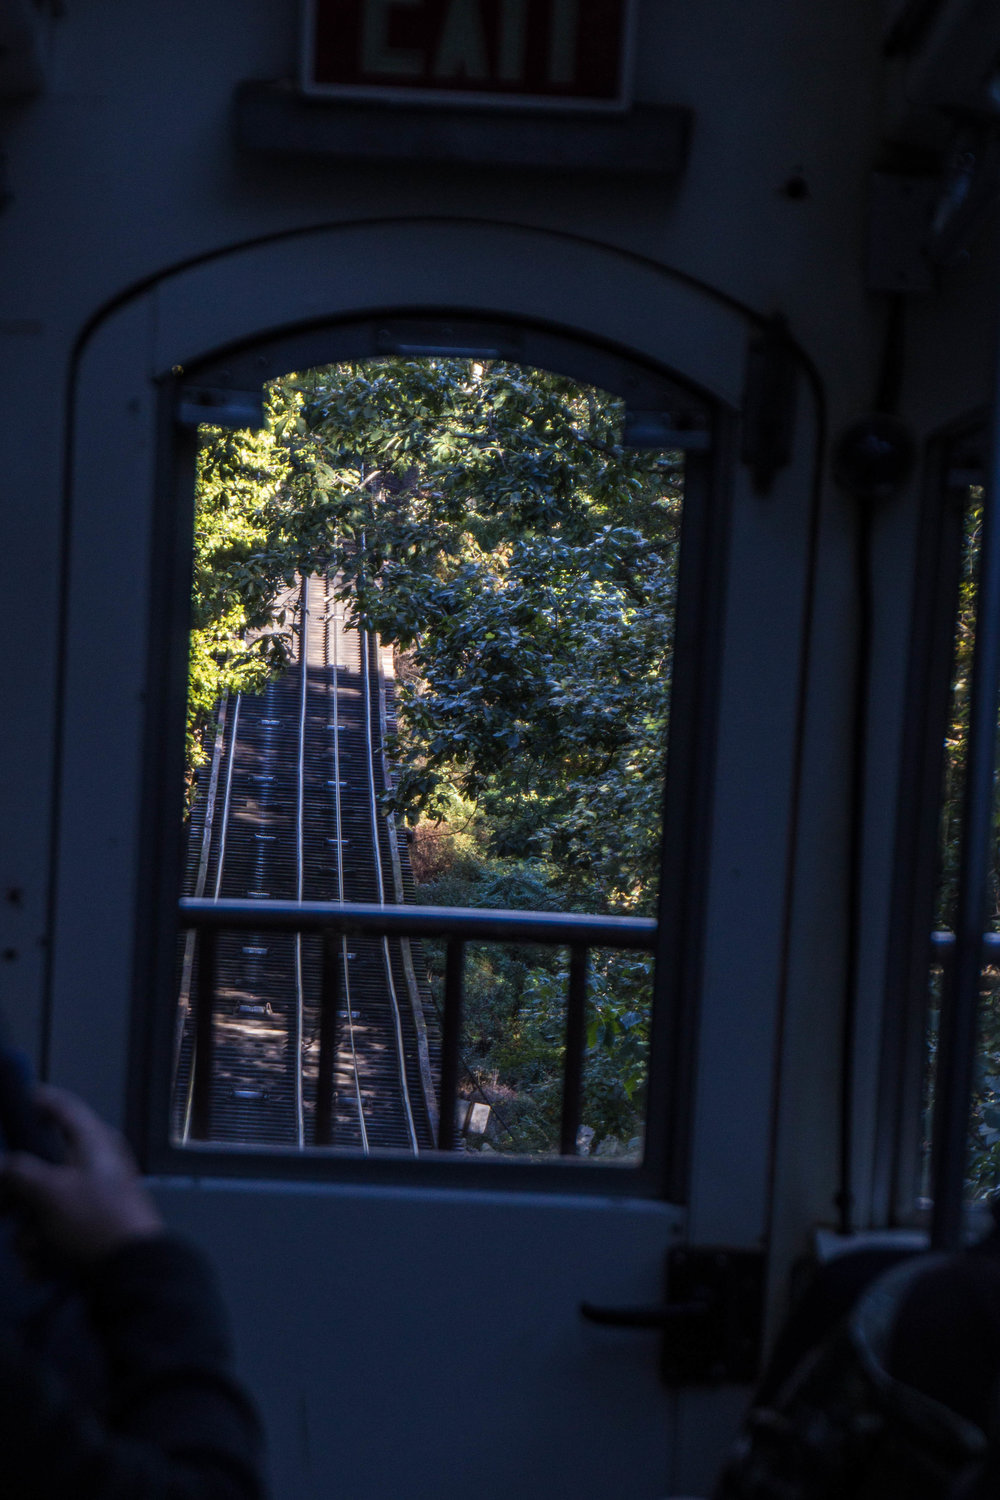 chattanooga-incline-railway-16.jpg